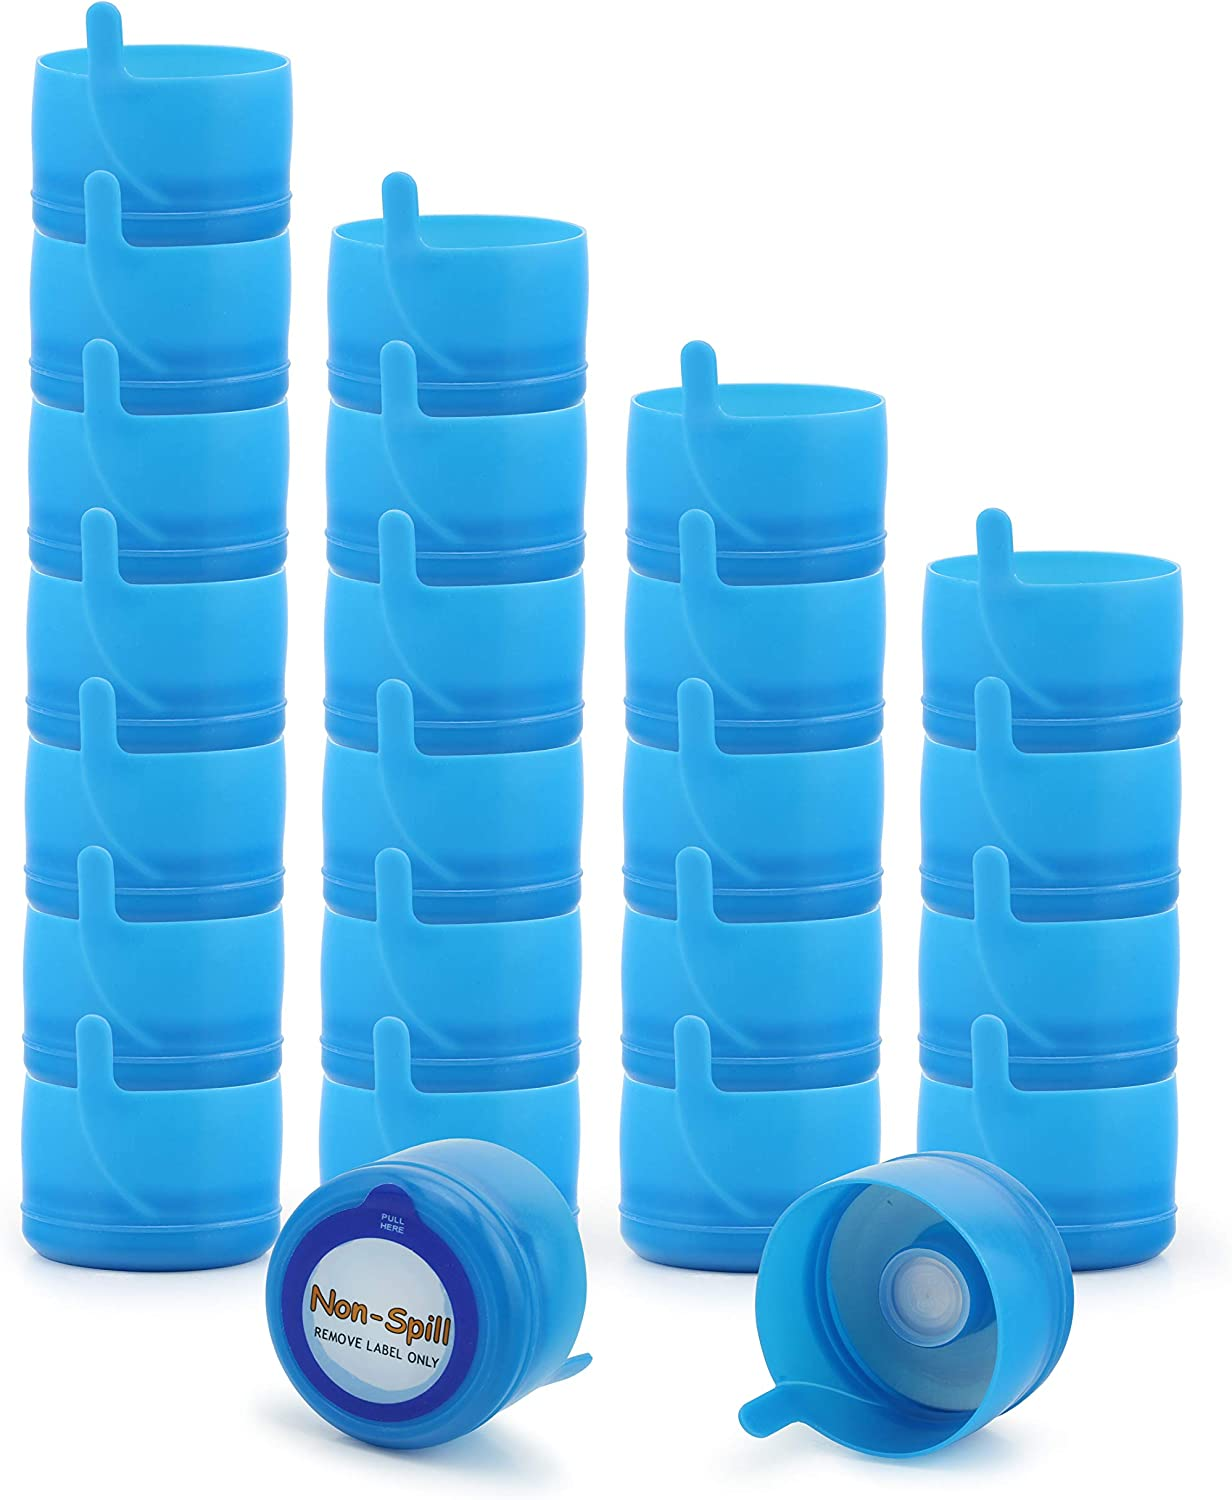 Cornucopia 3 and 5 Gallon Water Jug Replacement Caps (24-Pack), Multi-Use Parts Non Spill Lids for Water Dispenser Carboys